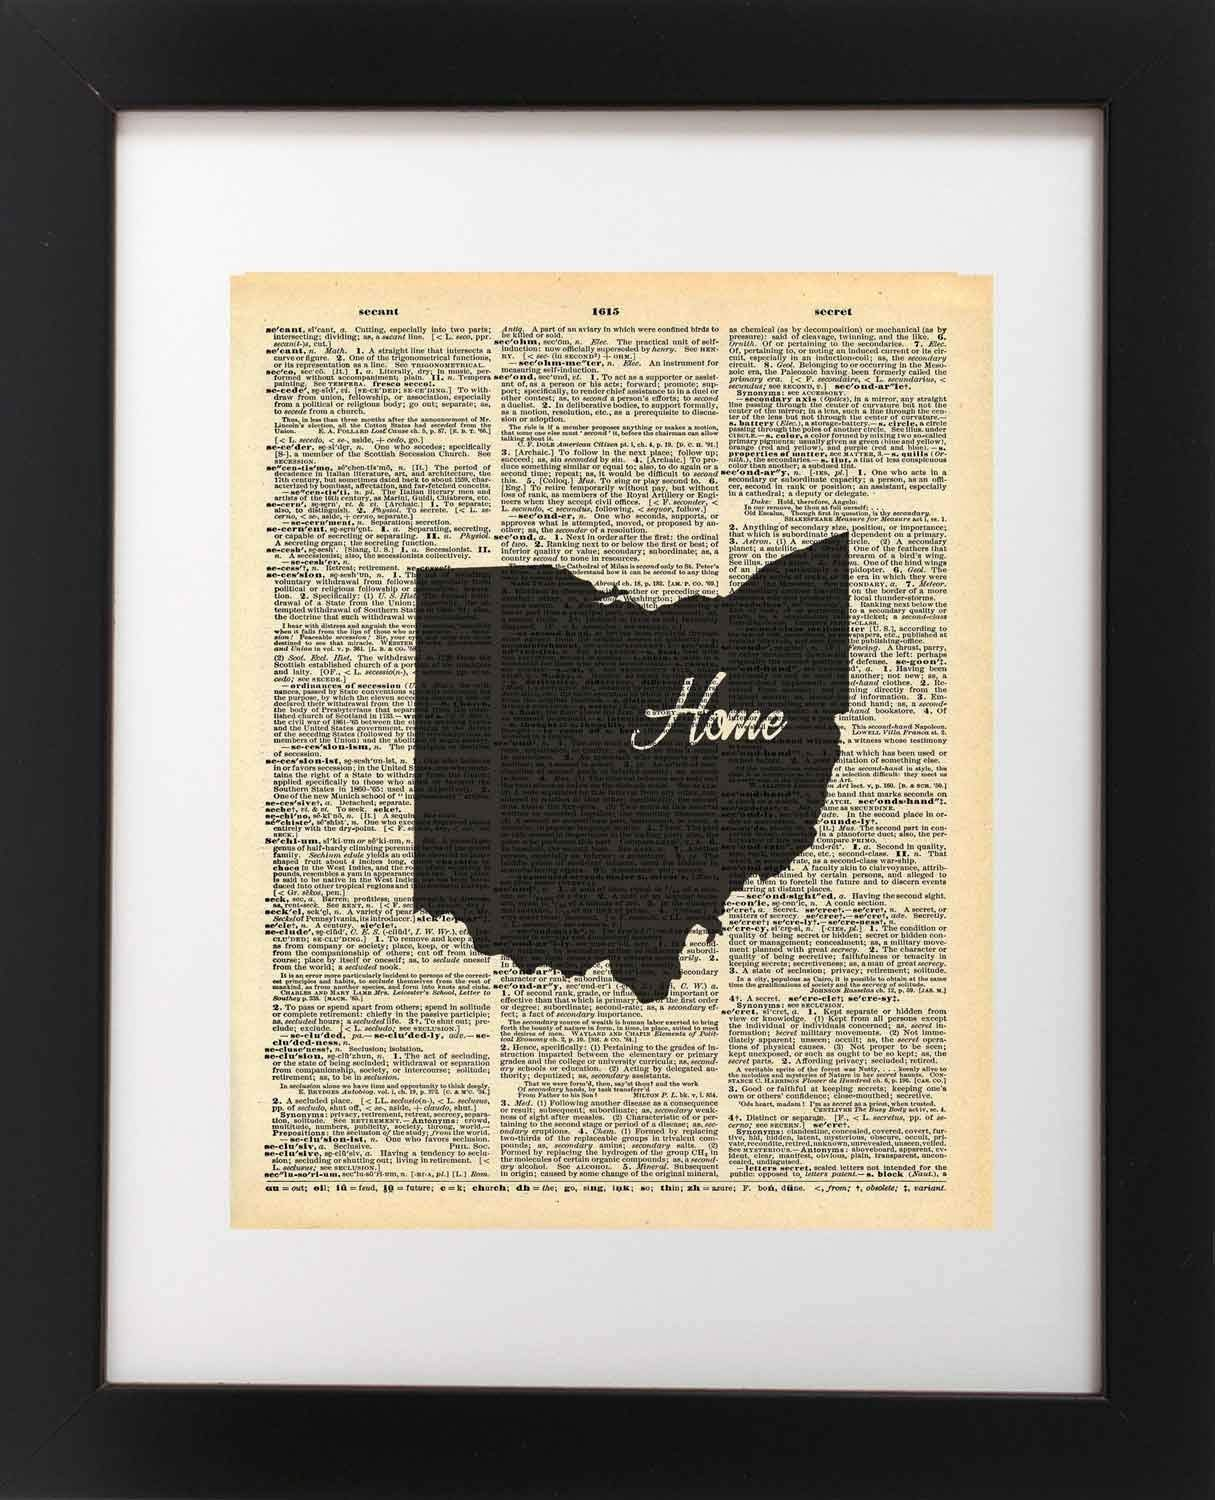 Ohio State Vintage Map Vintage Dictionary Print 8x10 inch Home Vintage Art Abstract Prints Wall Art for Home Decor Wall Decorations For Living Room Bedroom Office Ready-to-Frame Home